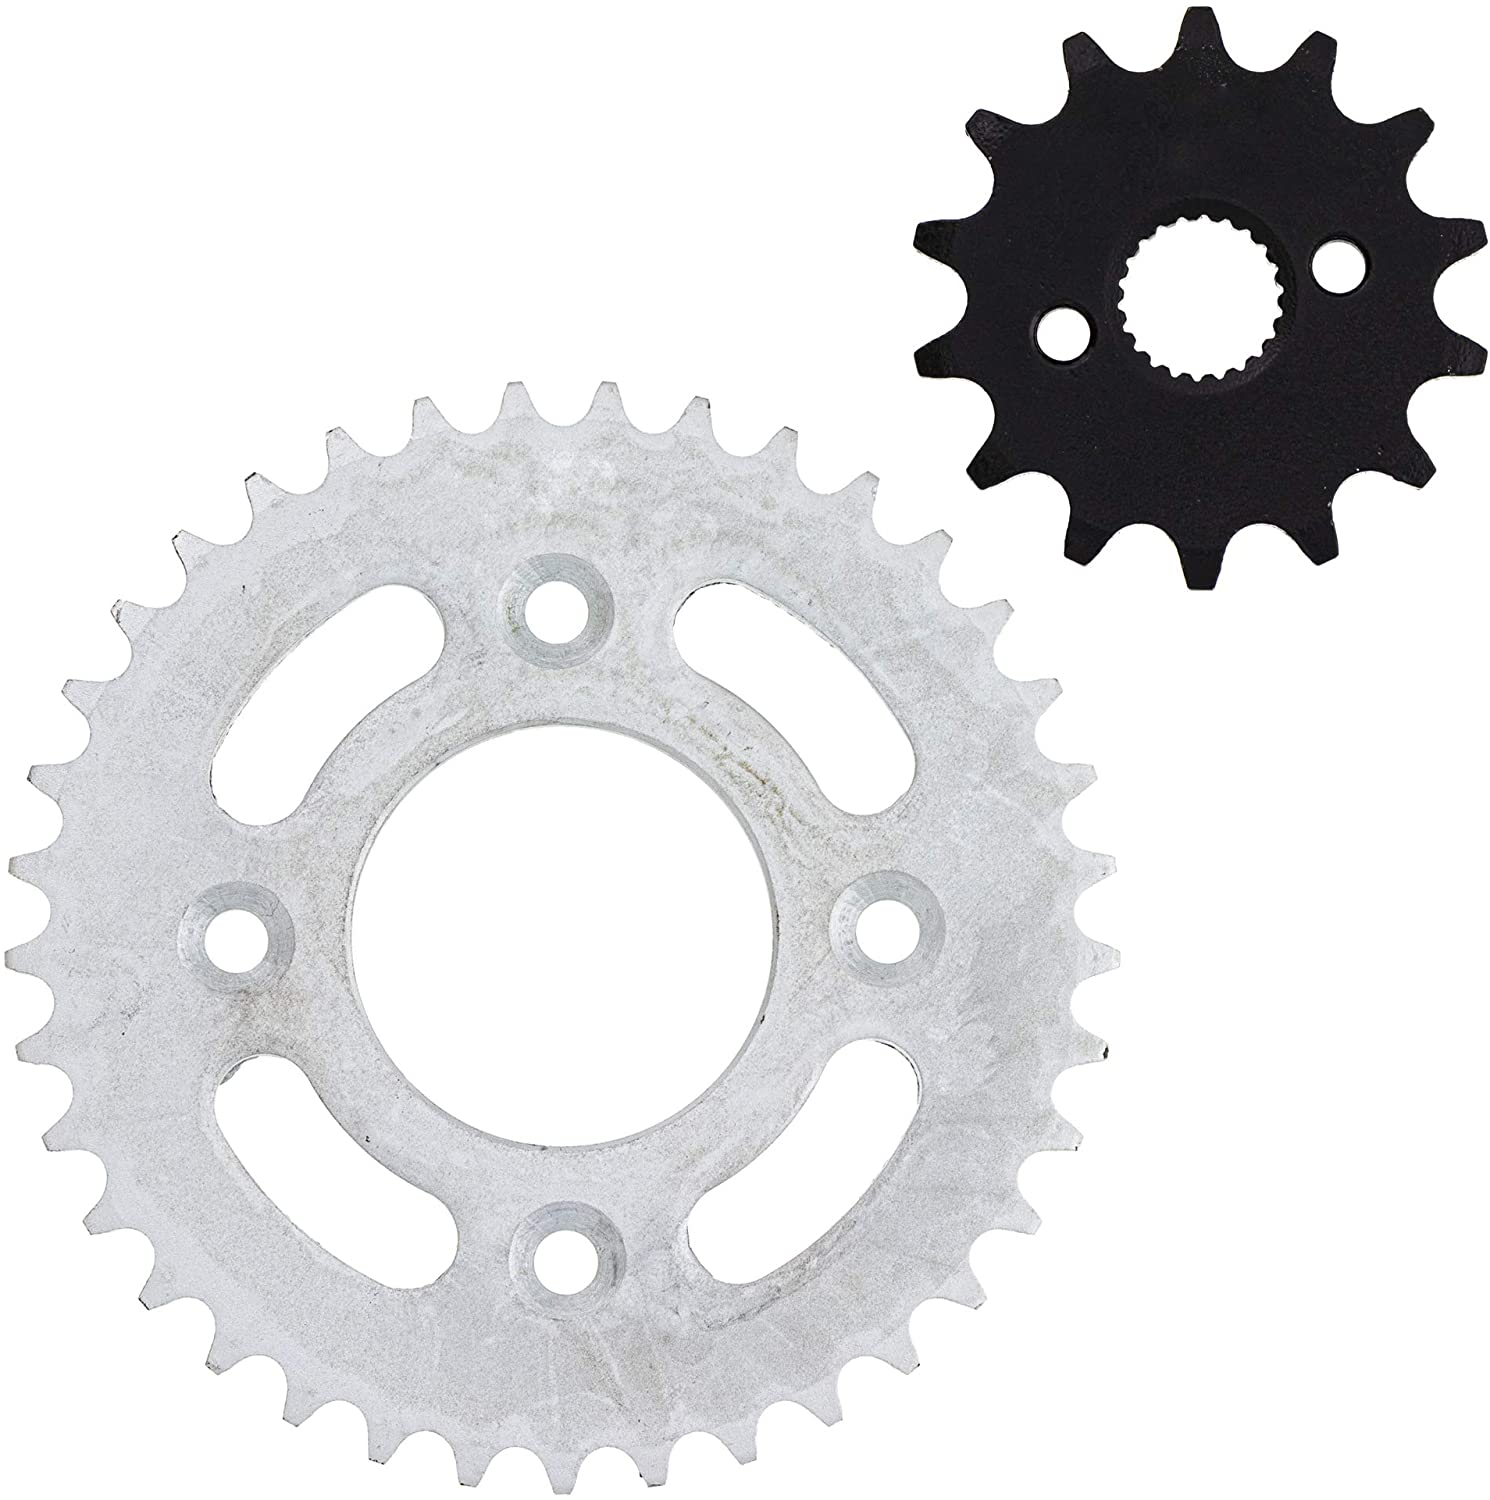 NICHE 420 Pitch Front 14T Rear 37T Drive Sprocket Kit For 2000-2016 Honda CRF50F XR50R